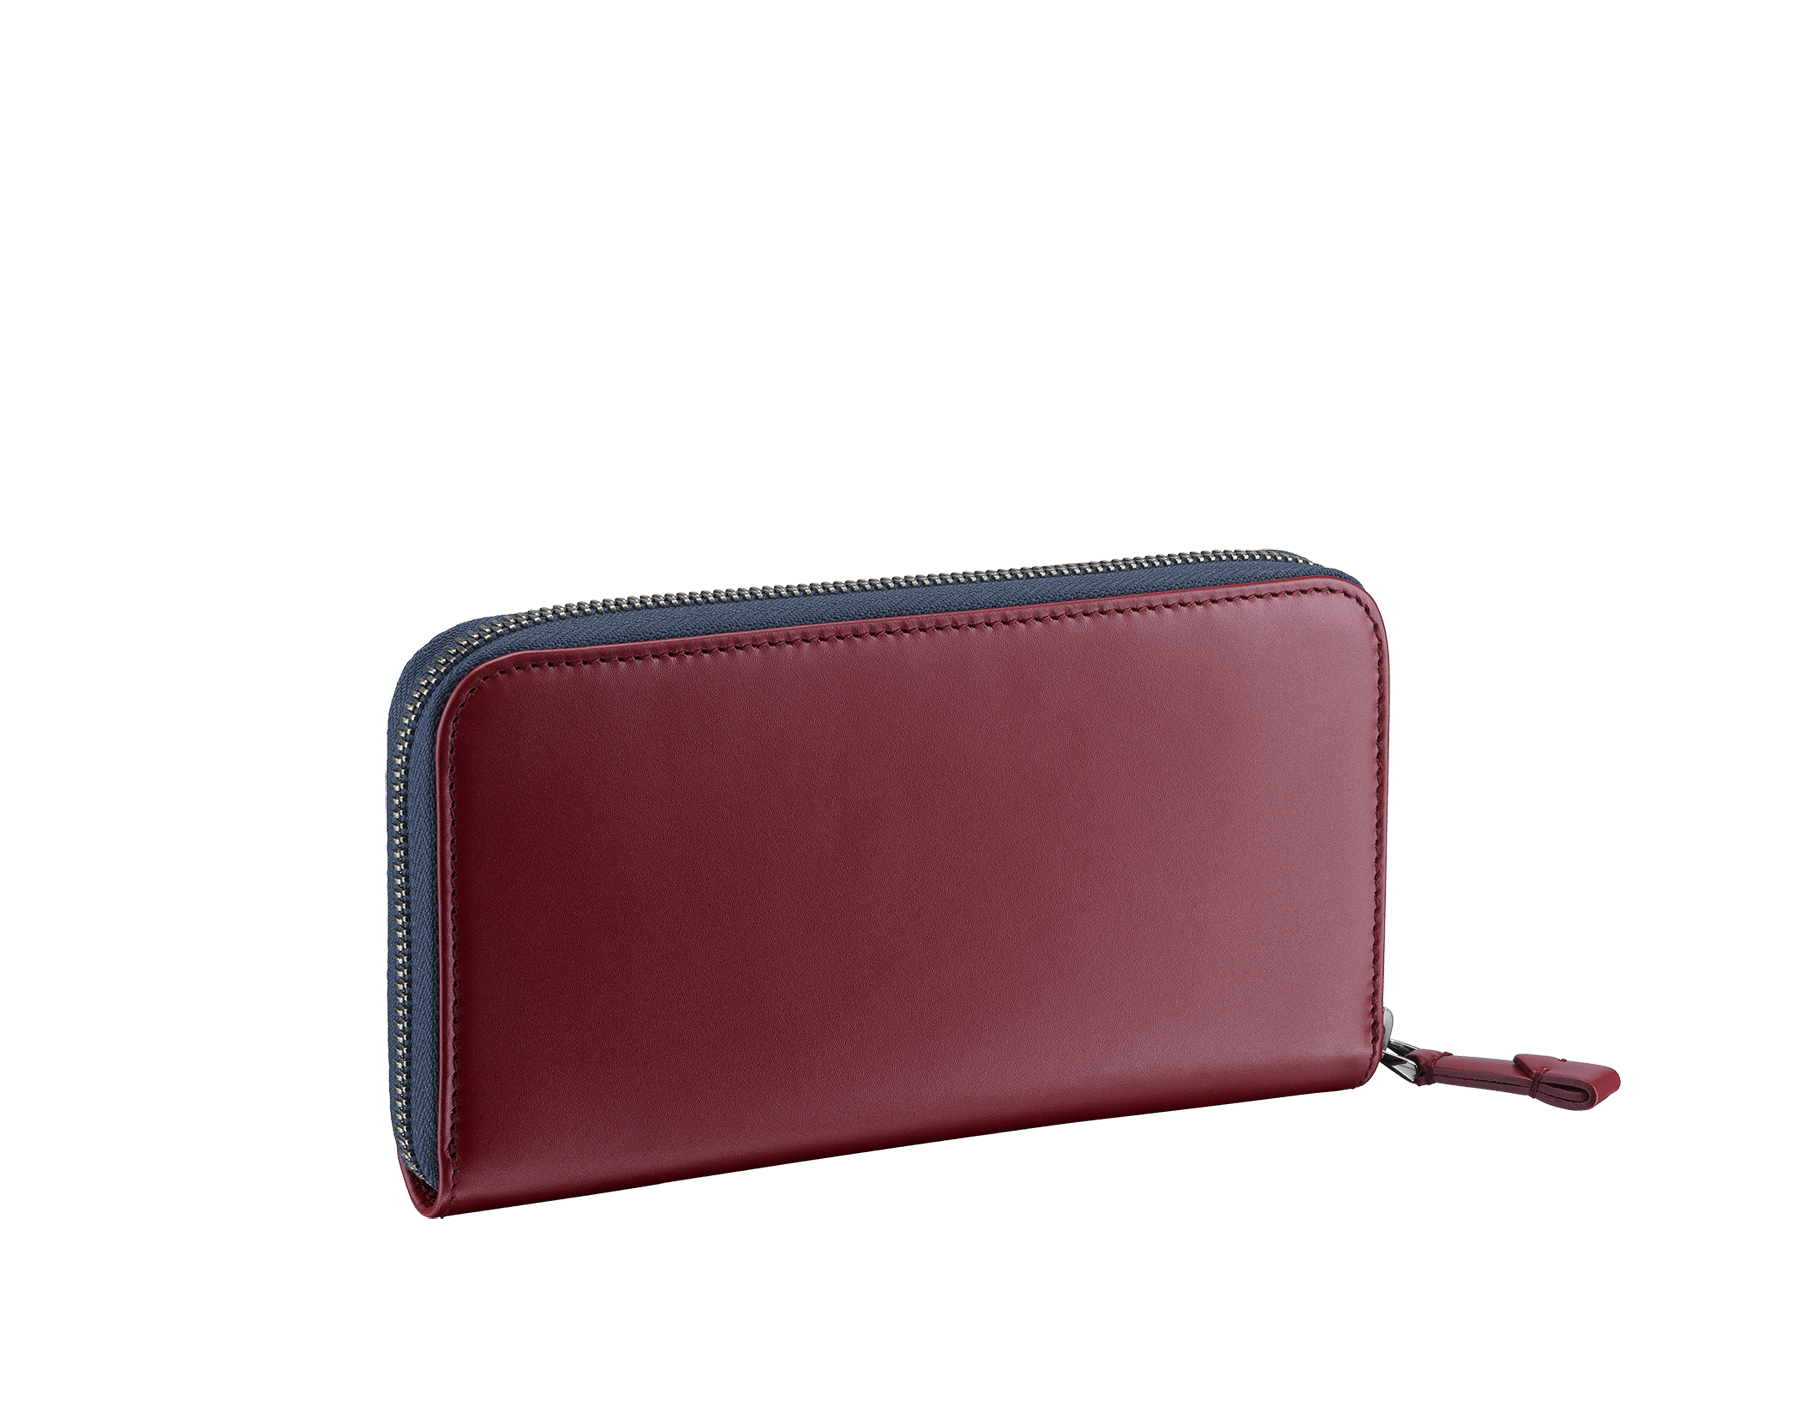 Serpenti Scaglie men's zipped wallet in denim sapphire grazed calf leather and roman garnet calf leather. Bvlgari logo engraved on the hexagonal scaglie metal plate finished in dark ruthenium. 288343 image 3